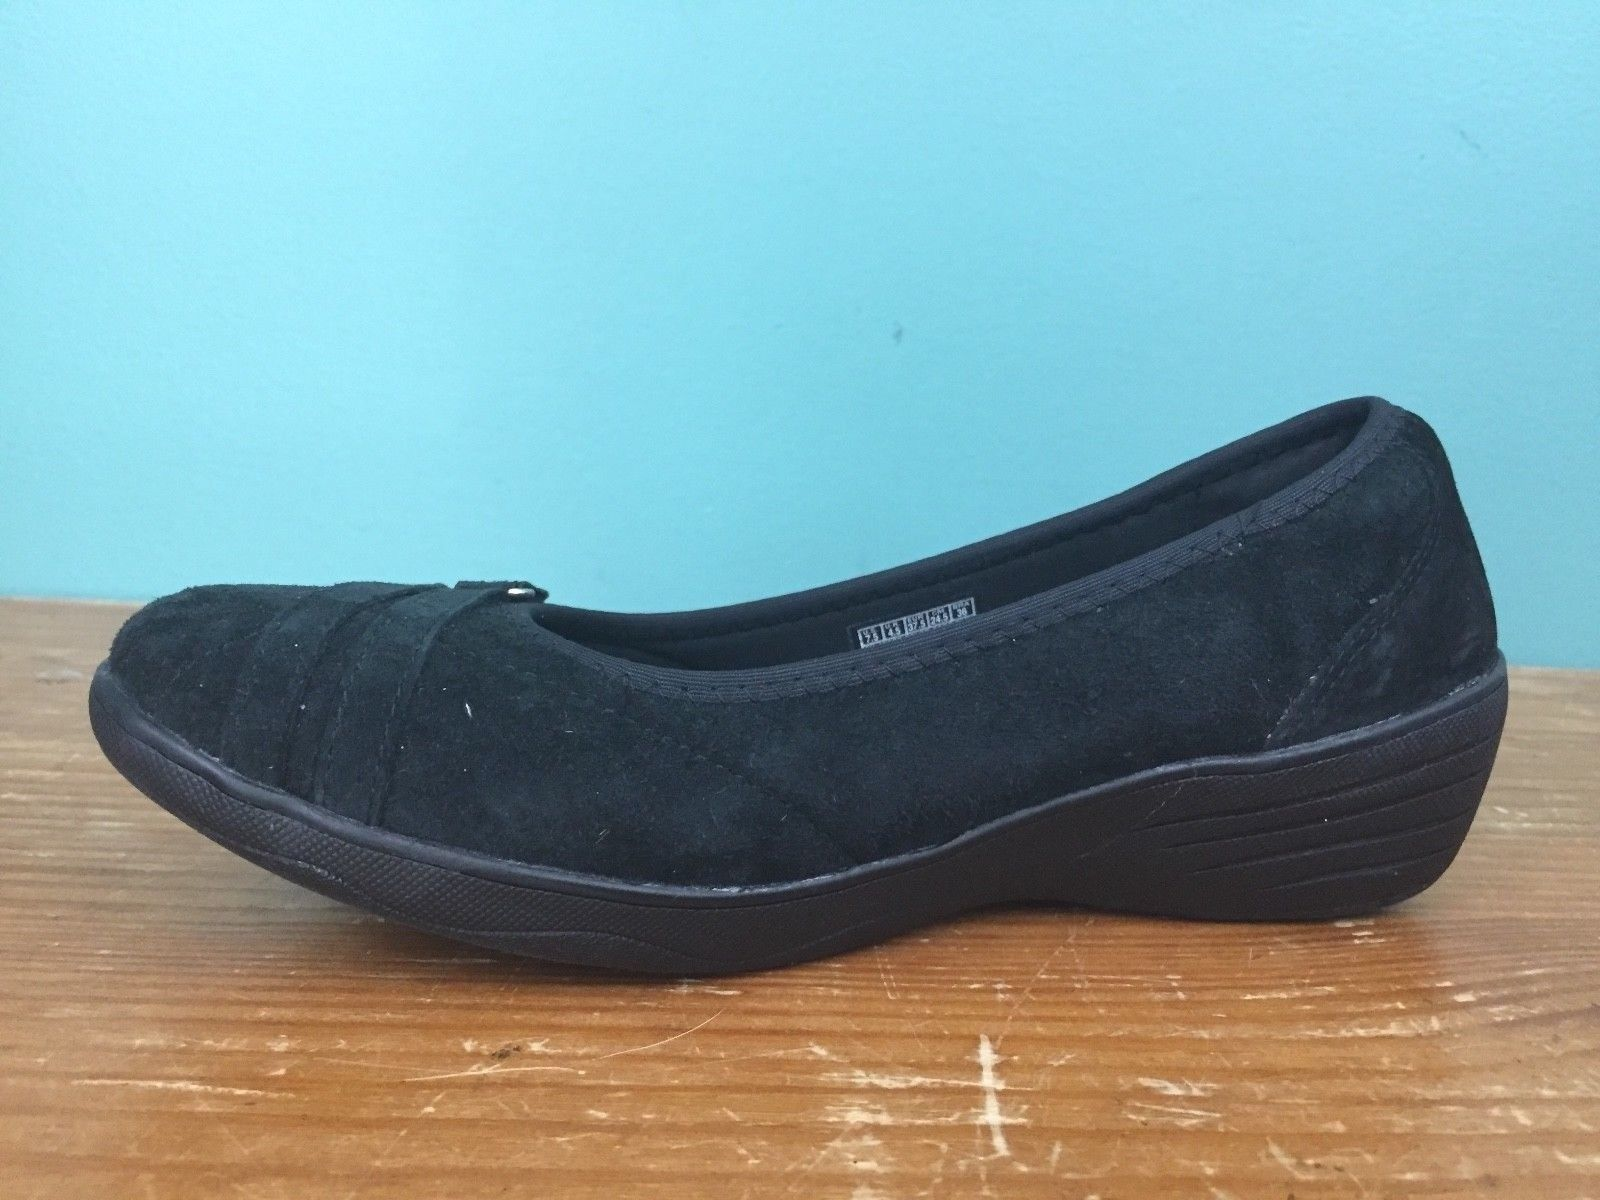 Skechers Kiss Women's Stretch Fit Air-Cooled Memory Foam Shoes -Size 7.5 - Black